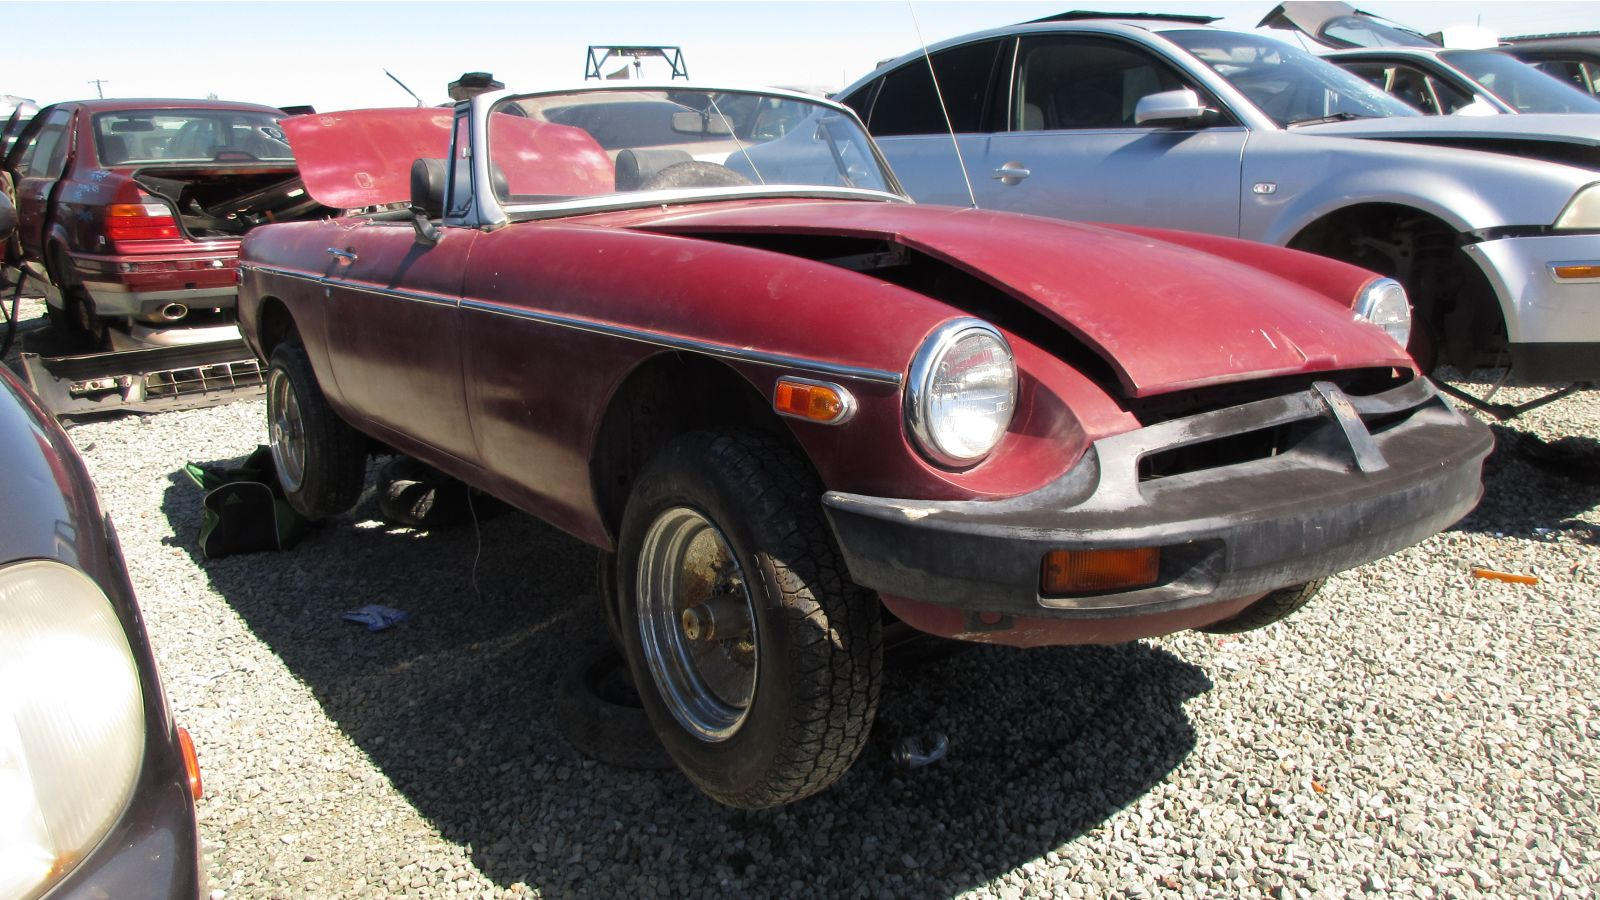 Junkyard Find: 1976 MG MGB - The Truth About Cars